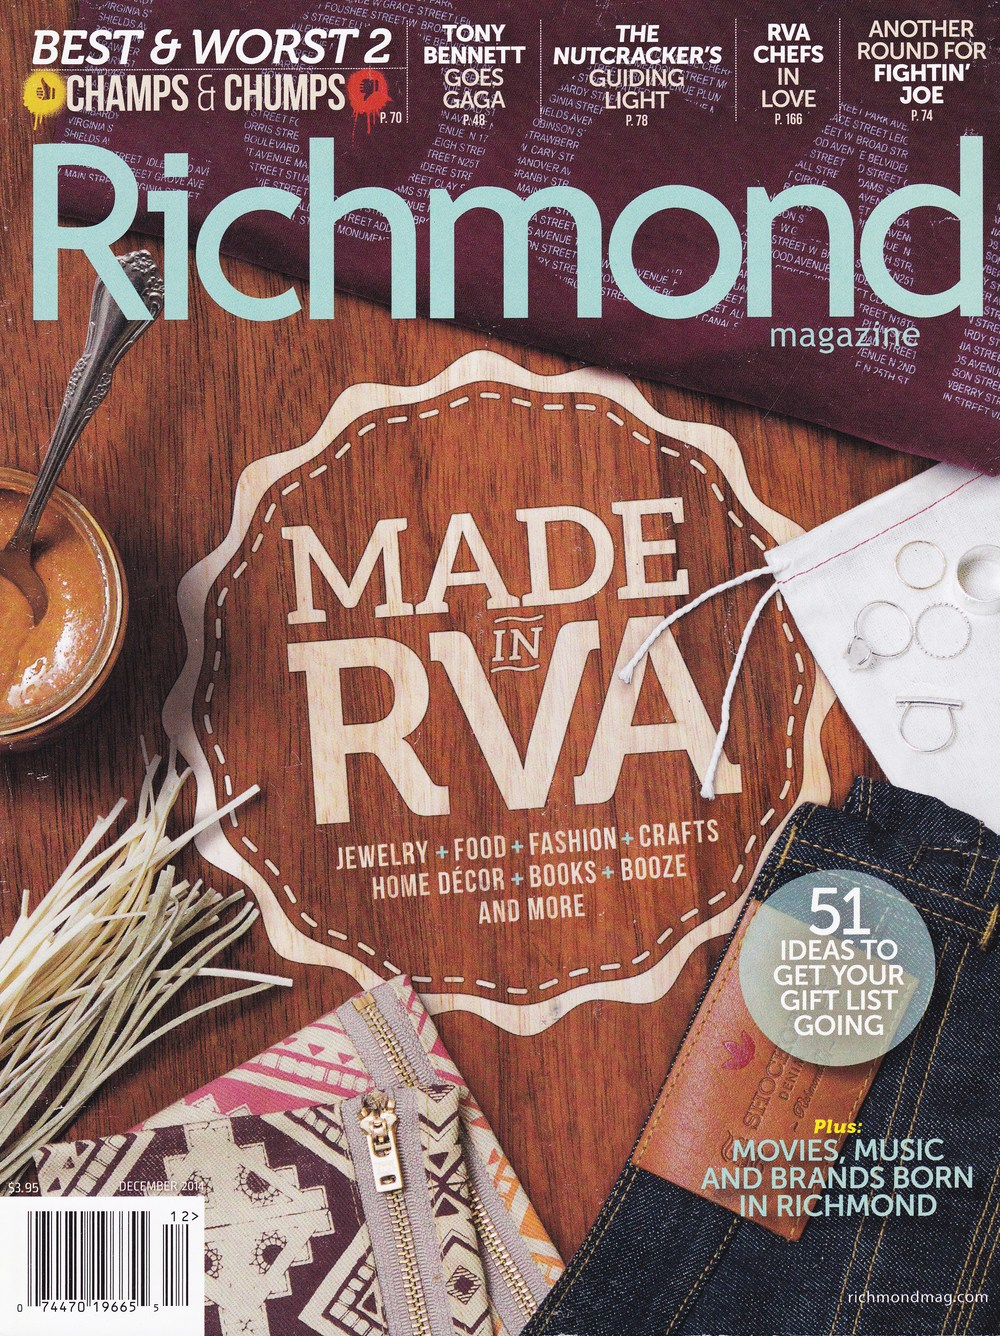 Richmond-magazine-december-2014.jpg